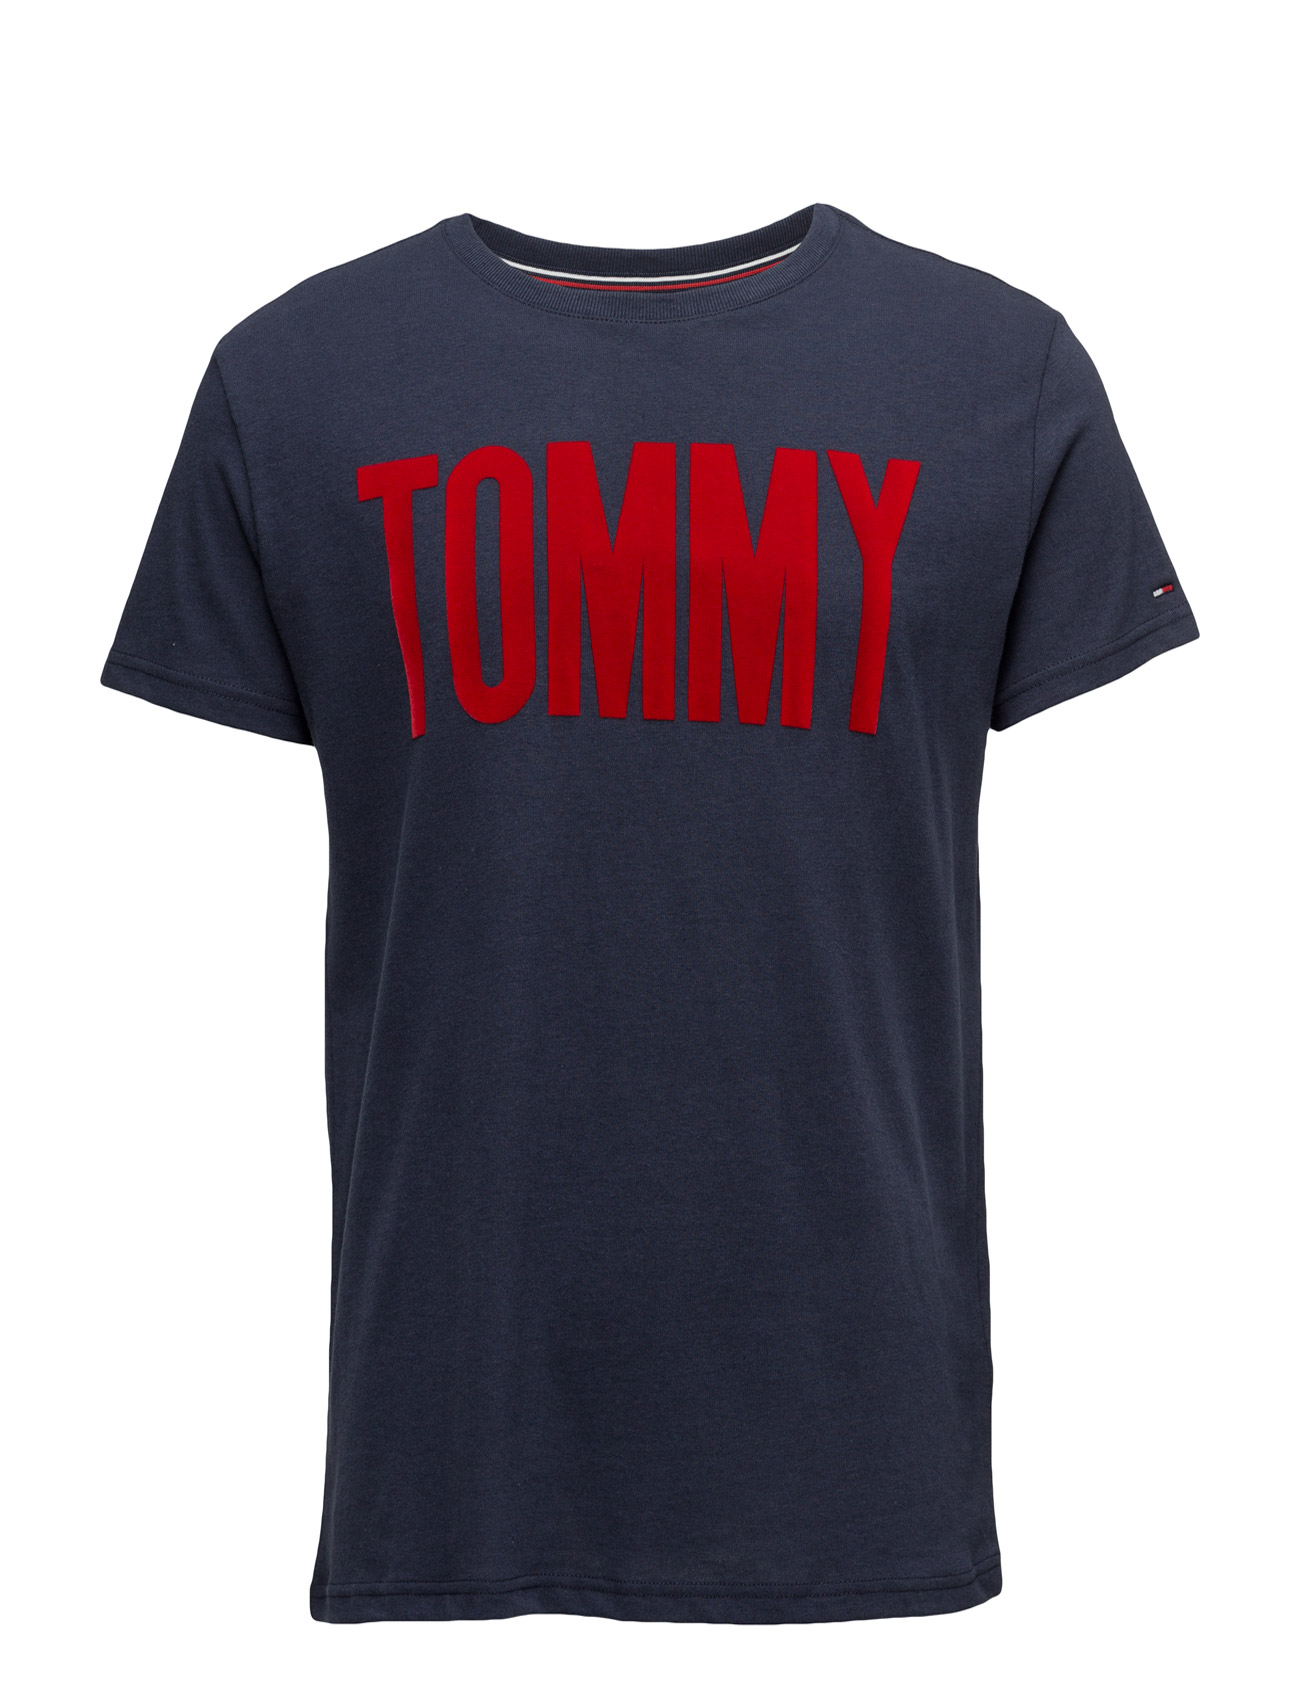 Tommy Jeans THDM BASIC CN T-SHIRT S/S 17